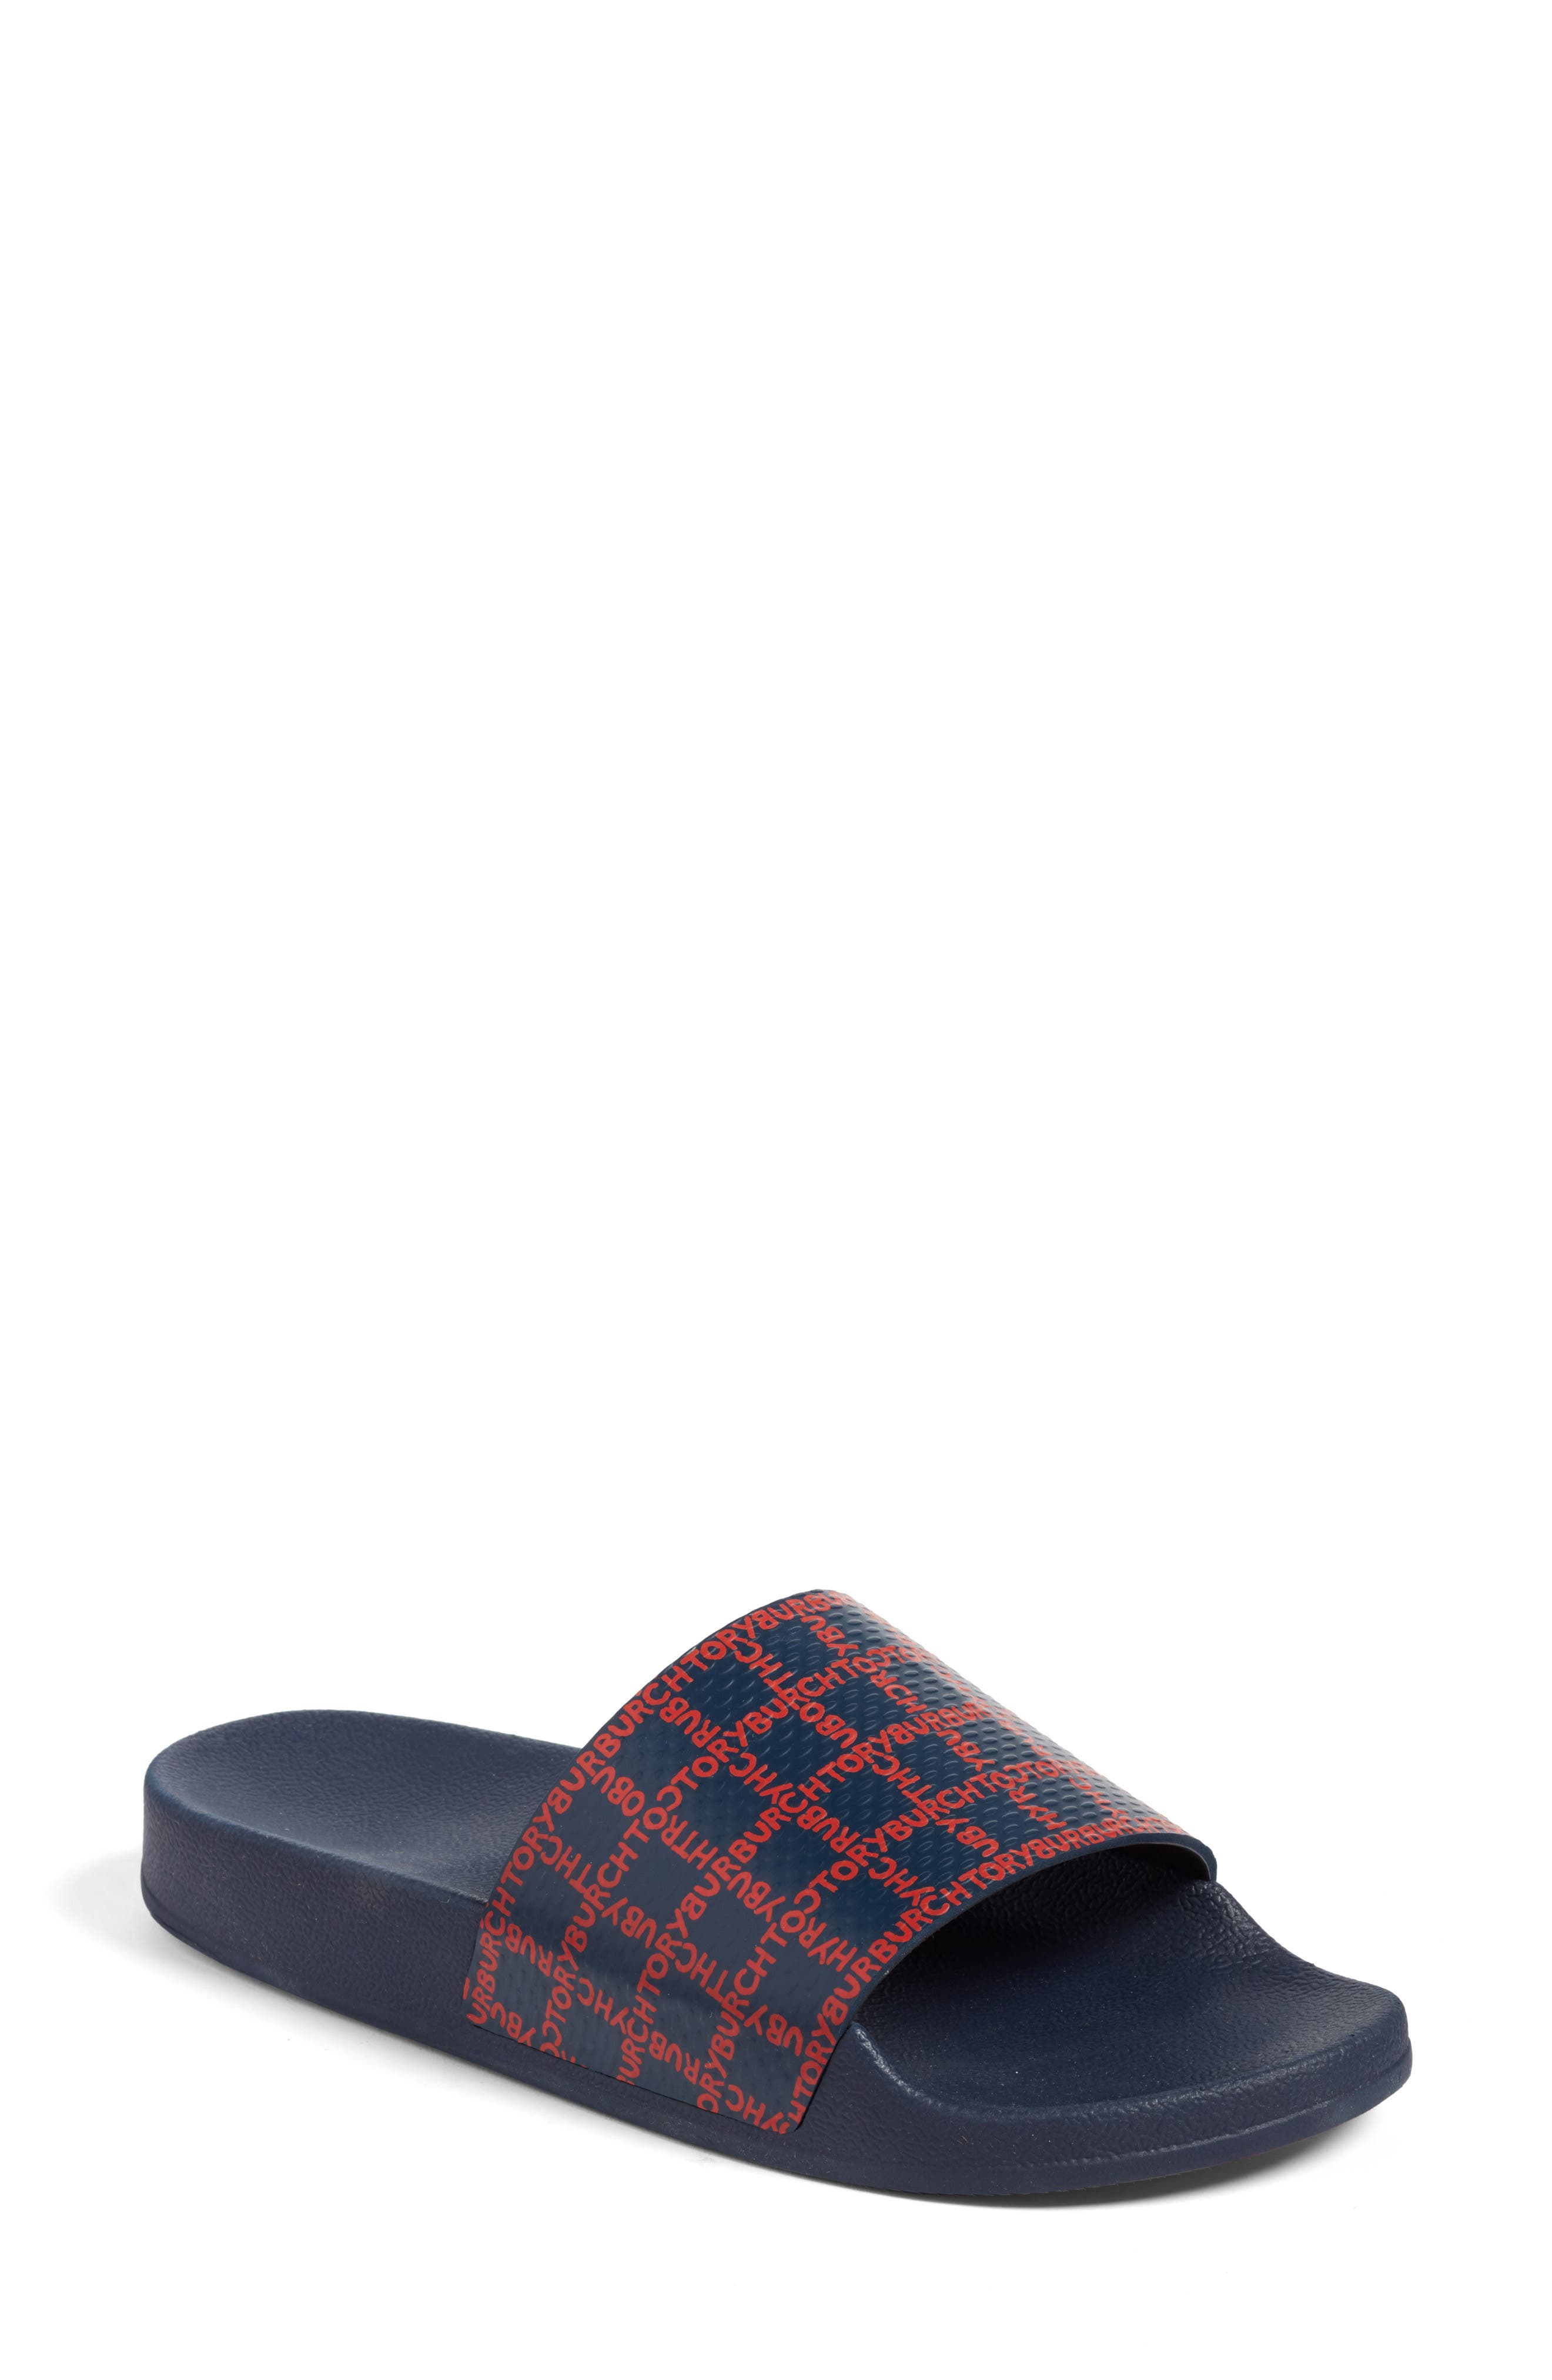 Stormy Slide Sandal,                         Main,                         color, Tory Navy/ Tory Red